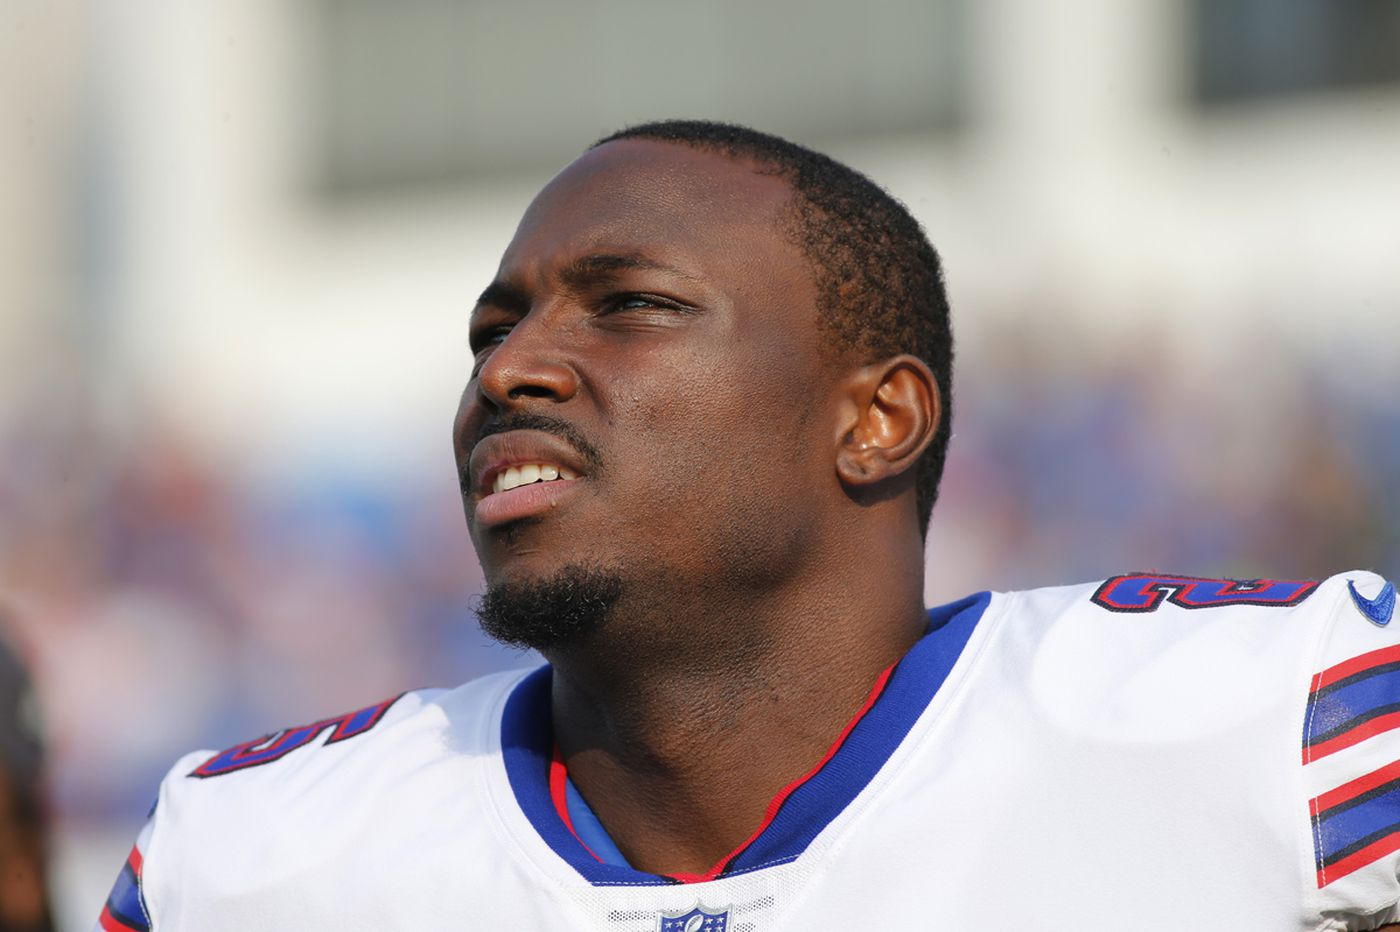 LeSean McCoy: Bills coach weighs in on troubling new allegations